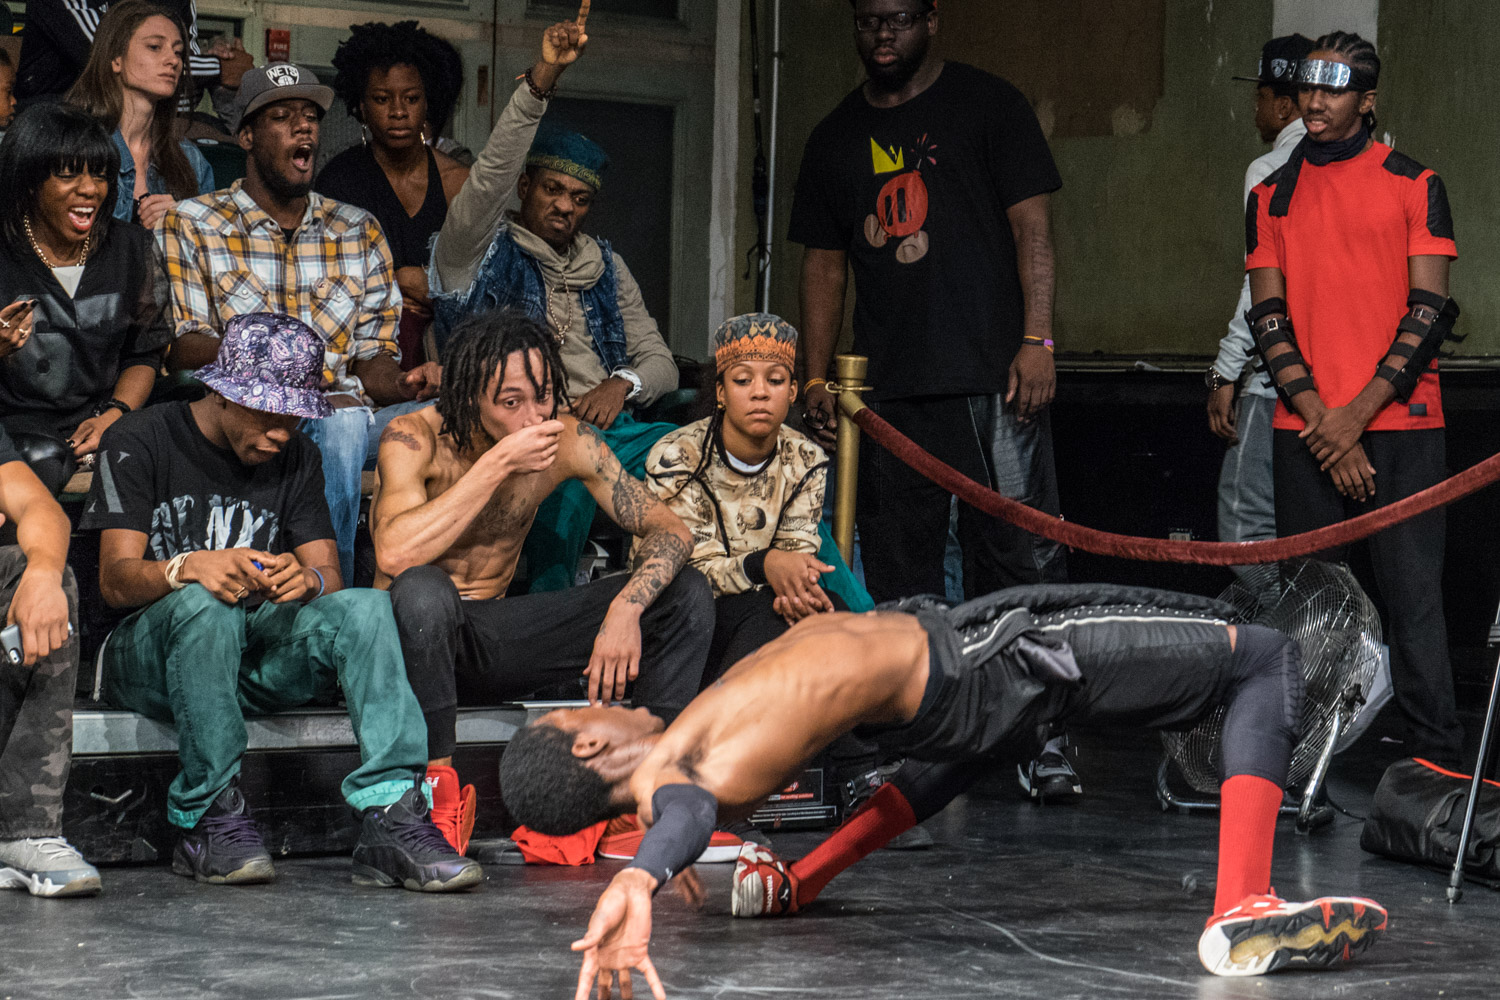 Skillful young dancers compete at a dance event in the Bedstuy area of Brooklyn. The dance events give young people the opportunity to compete against each other, make friends and settle differences in a positive environment rather than violence.